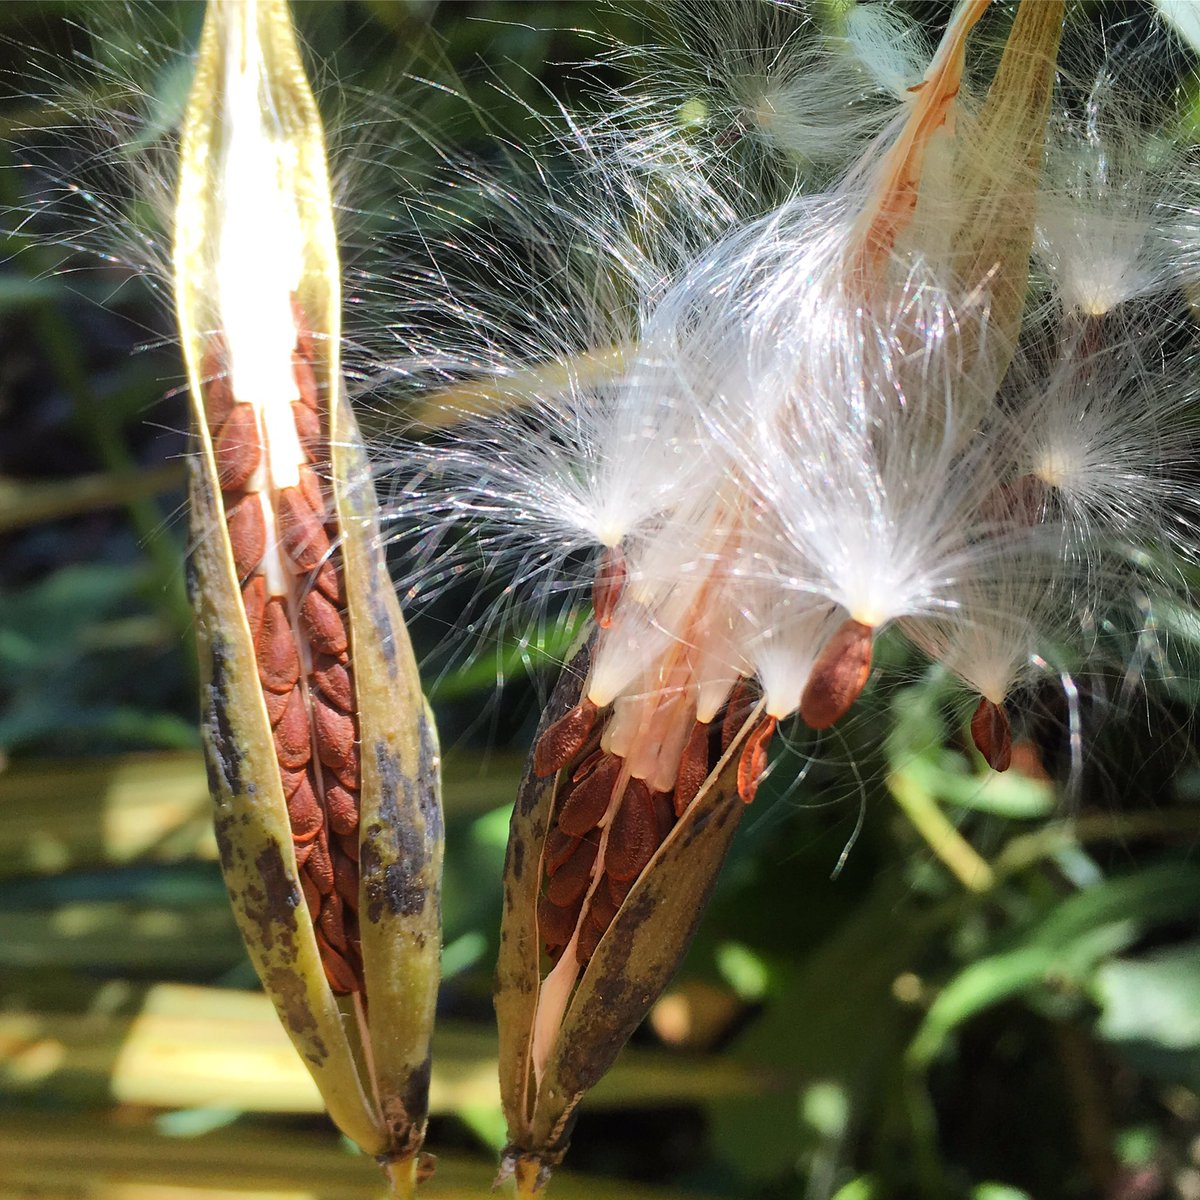 Newly opened milkweed seedpods. Tidily ordered for a disordered dispersal. #gardenchat <br>http://pic.twitter.com/2kPRKkDvjm